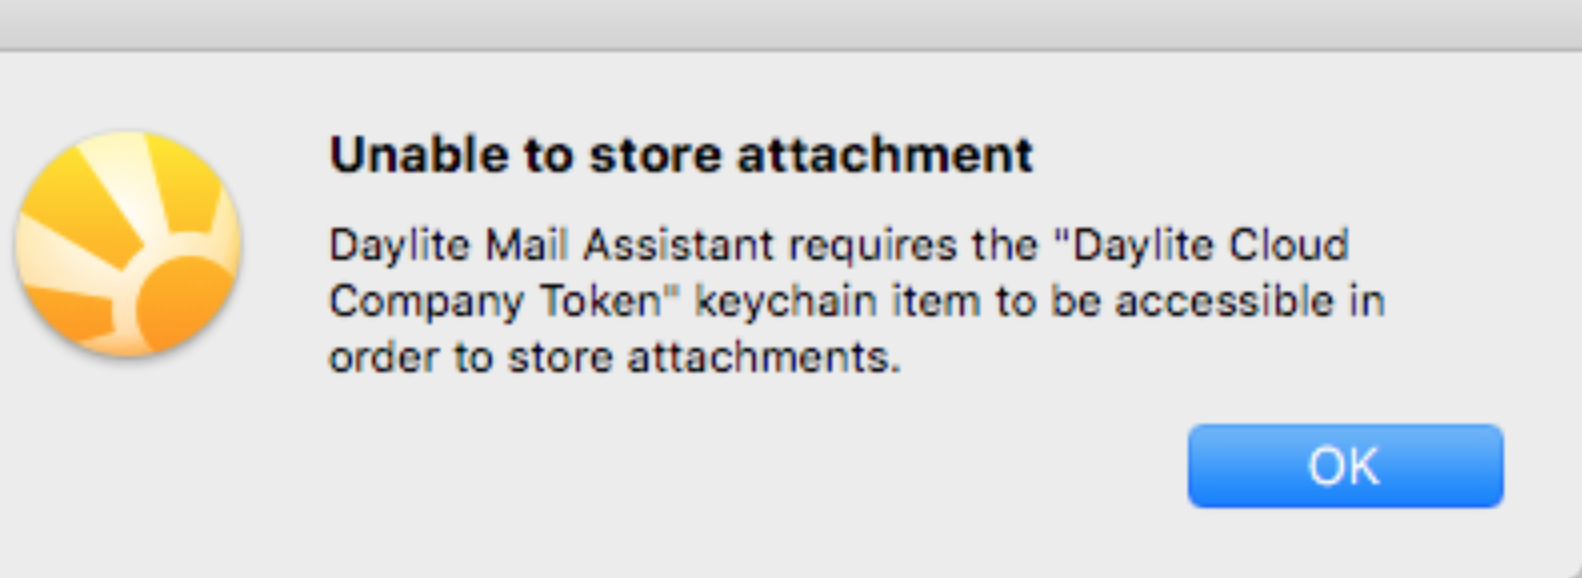 Unable To Store Attachment